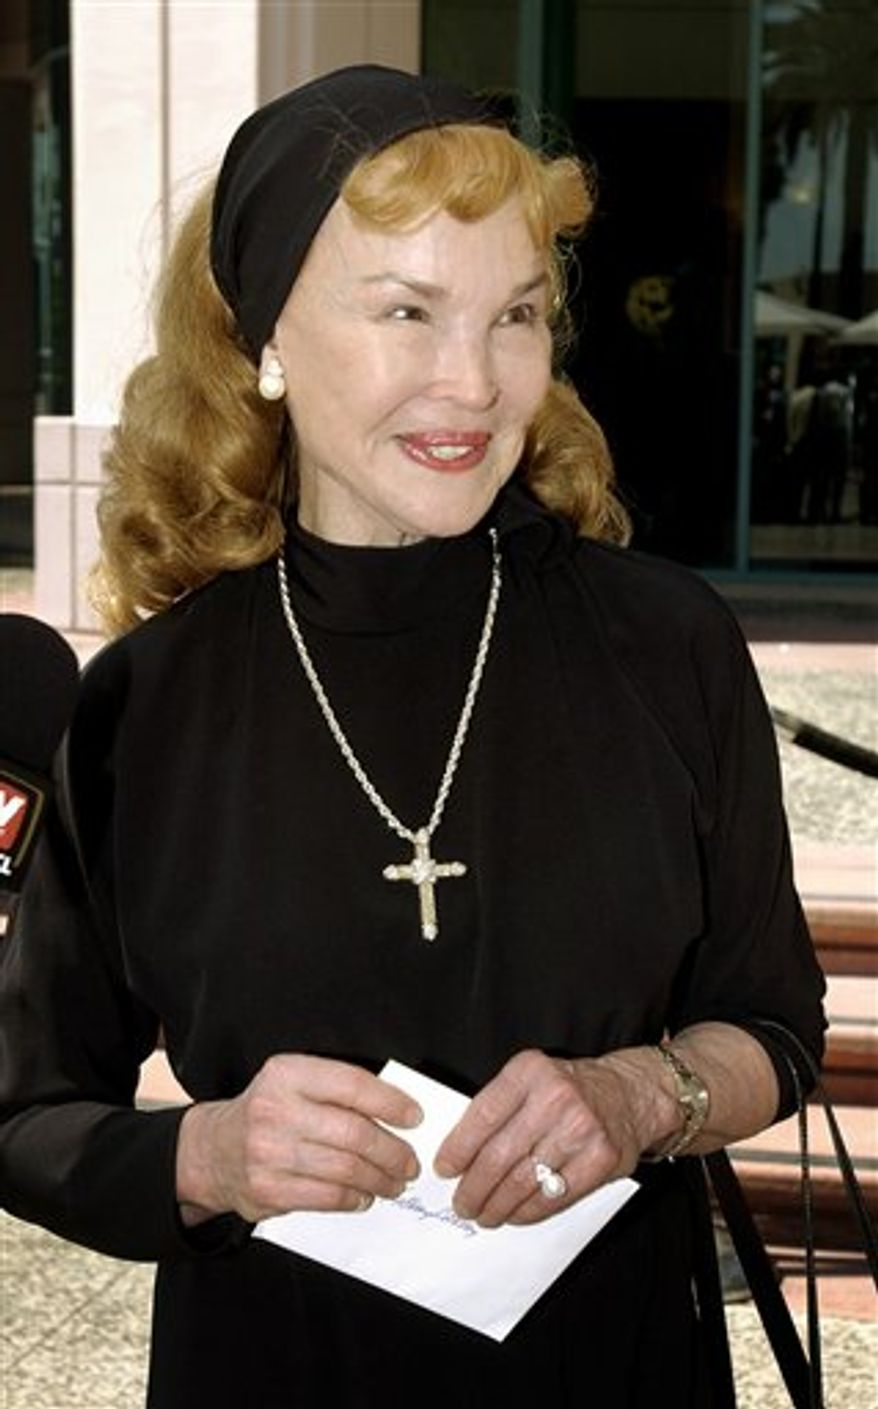 """FILE - In this Aug. 27, 2003 file photo, Kathryn Crosby,  Bing Crosby's widow, arrives for """"The Bob Hope Memorial Tribute"""" show at the Academy of Television Arts and Sciences iin Los Angeles. Crosby is recovering from injuries suffered in a single vehicle traffic accident in the Sierra Nevada. Crosby, 77, suffered major injuries and her husband, Maurice William Sullivan, 85, was killed in the Nov. 4 accident on U.S. 50 east of Placerville, Calif., California Highway Patrol spokesman Dan Stark said today. (AP Photo/Reed Saxon, file)"""